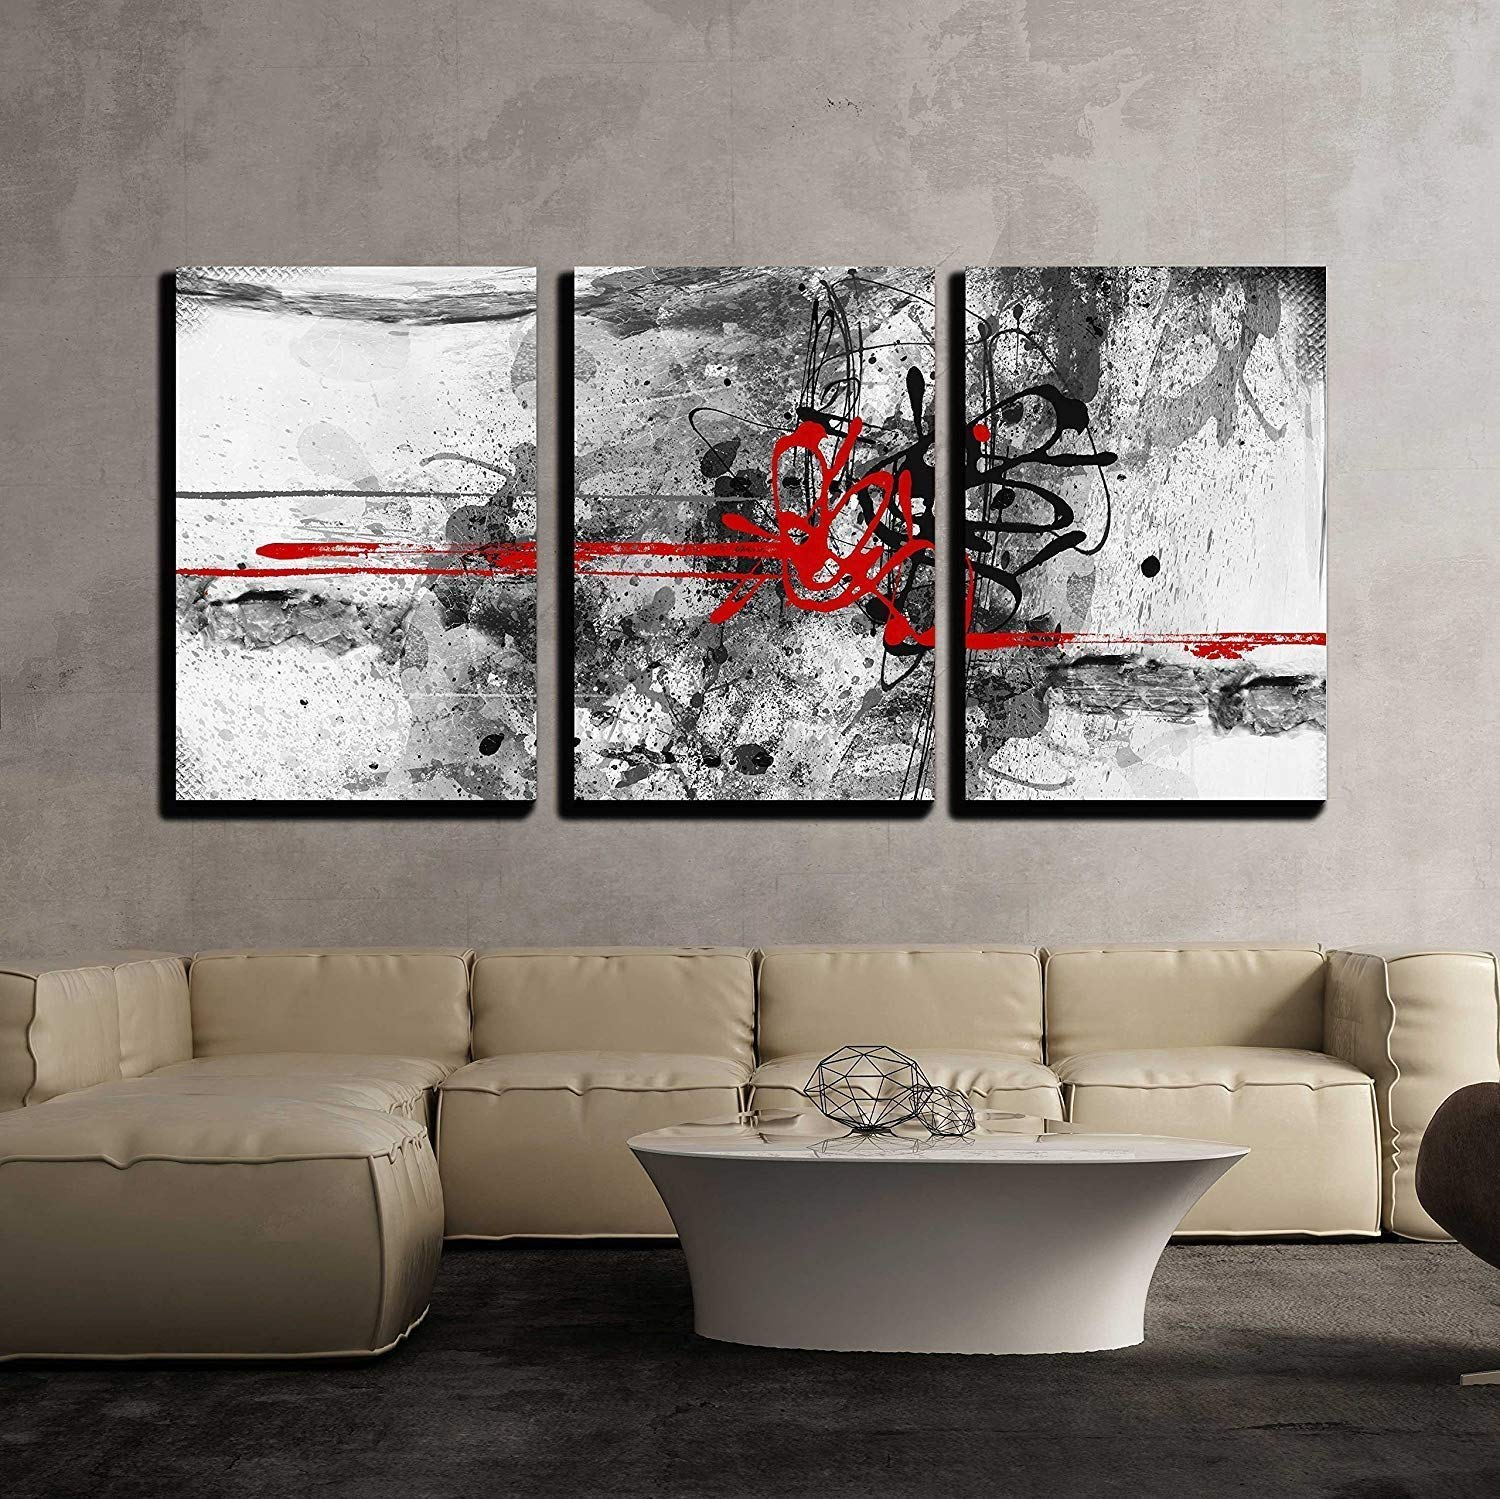 wall26 - 3 Piece Canvas Wall Art - Highly Detailed Grunge Abstract Textured Collage with Space for Your Text - Modern Home Decor Stretched and Framed Ready to Hang - 24''x36''x3 Panels by wall26